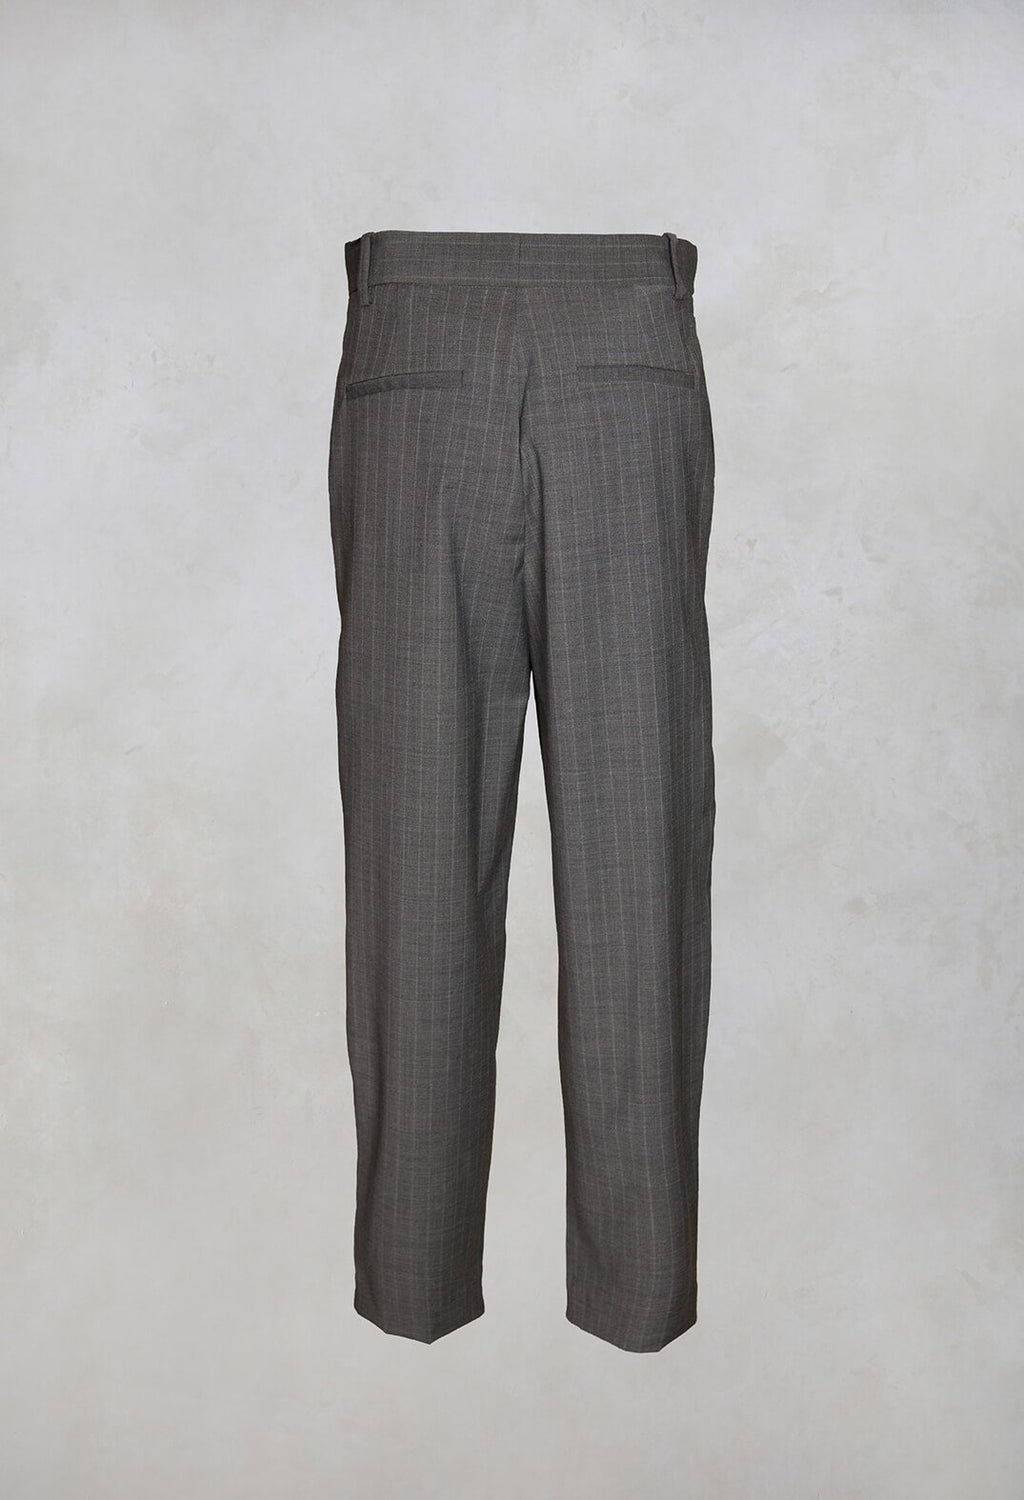 Tailored Trousers in Asfalto